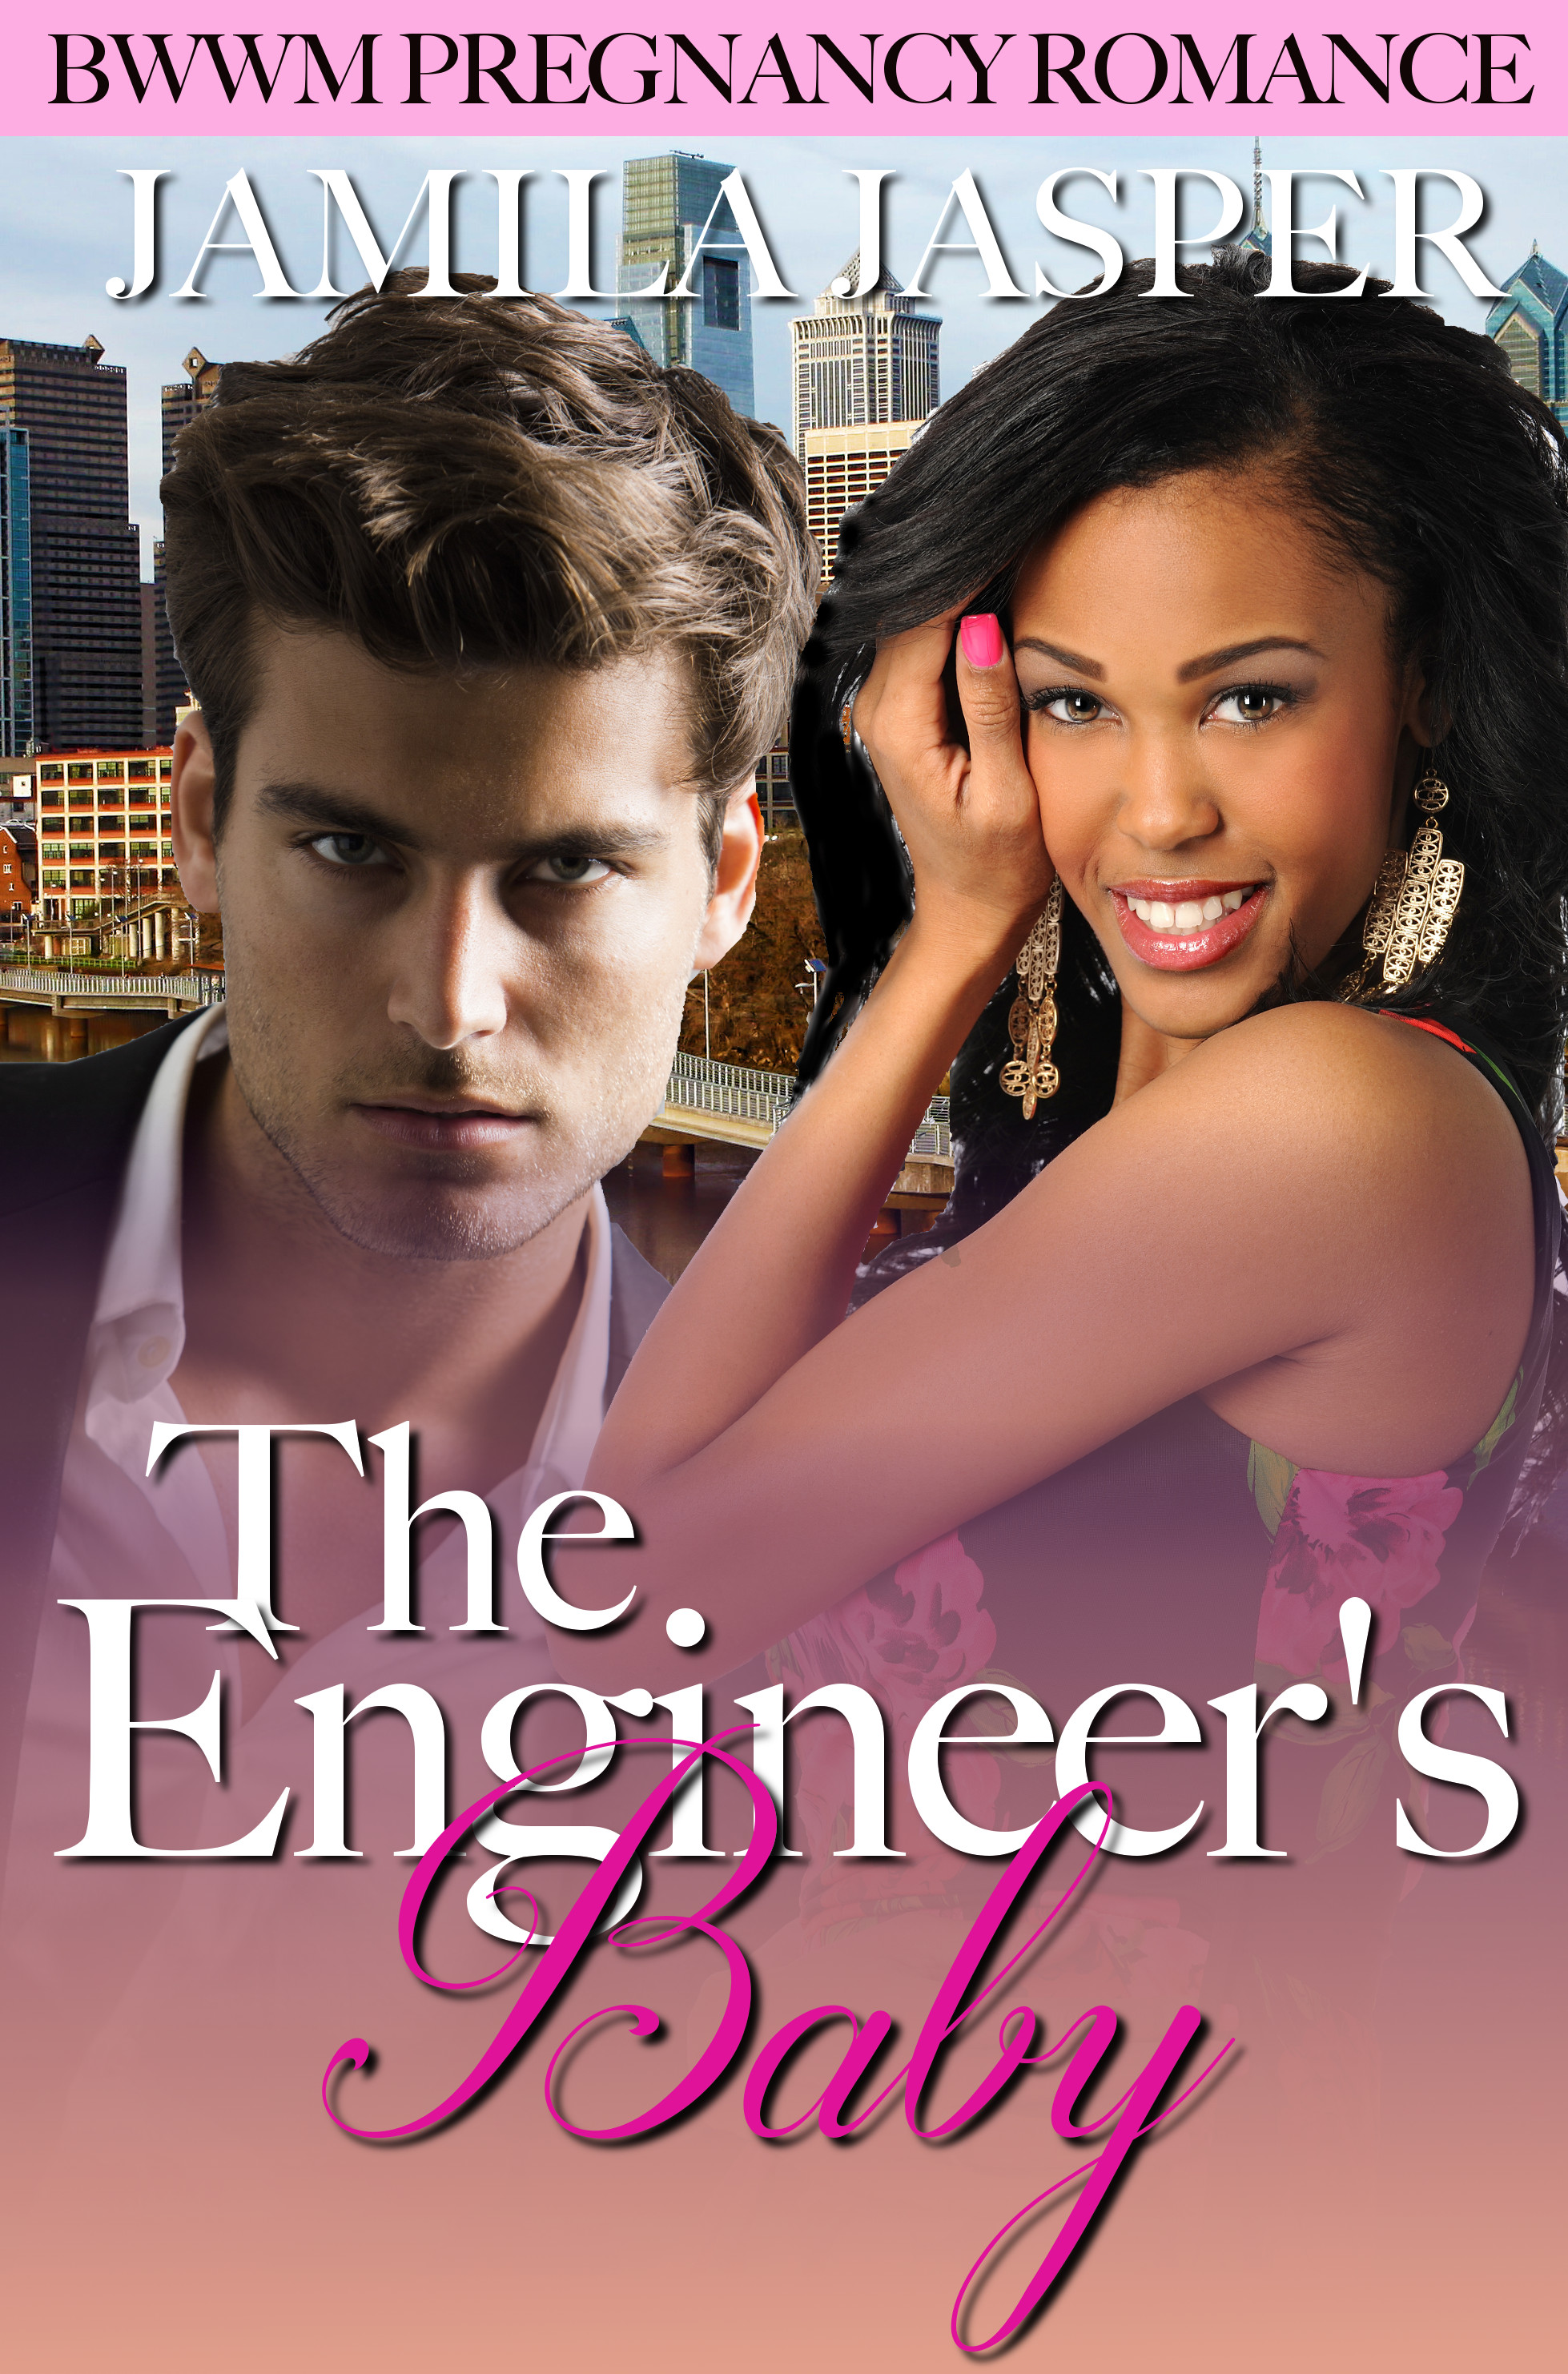 Romance Novel Excerpts The Engineer's Baby